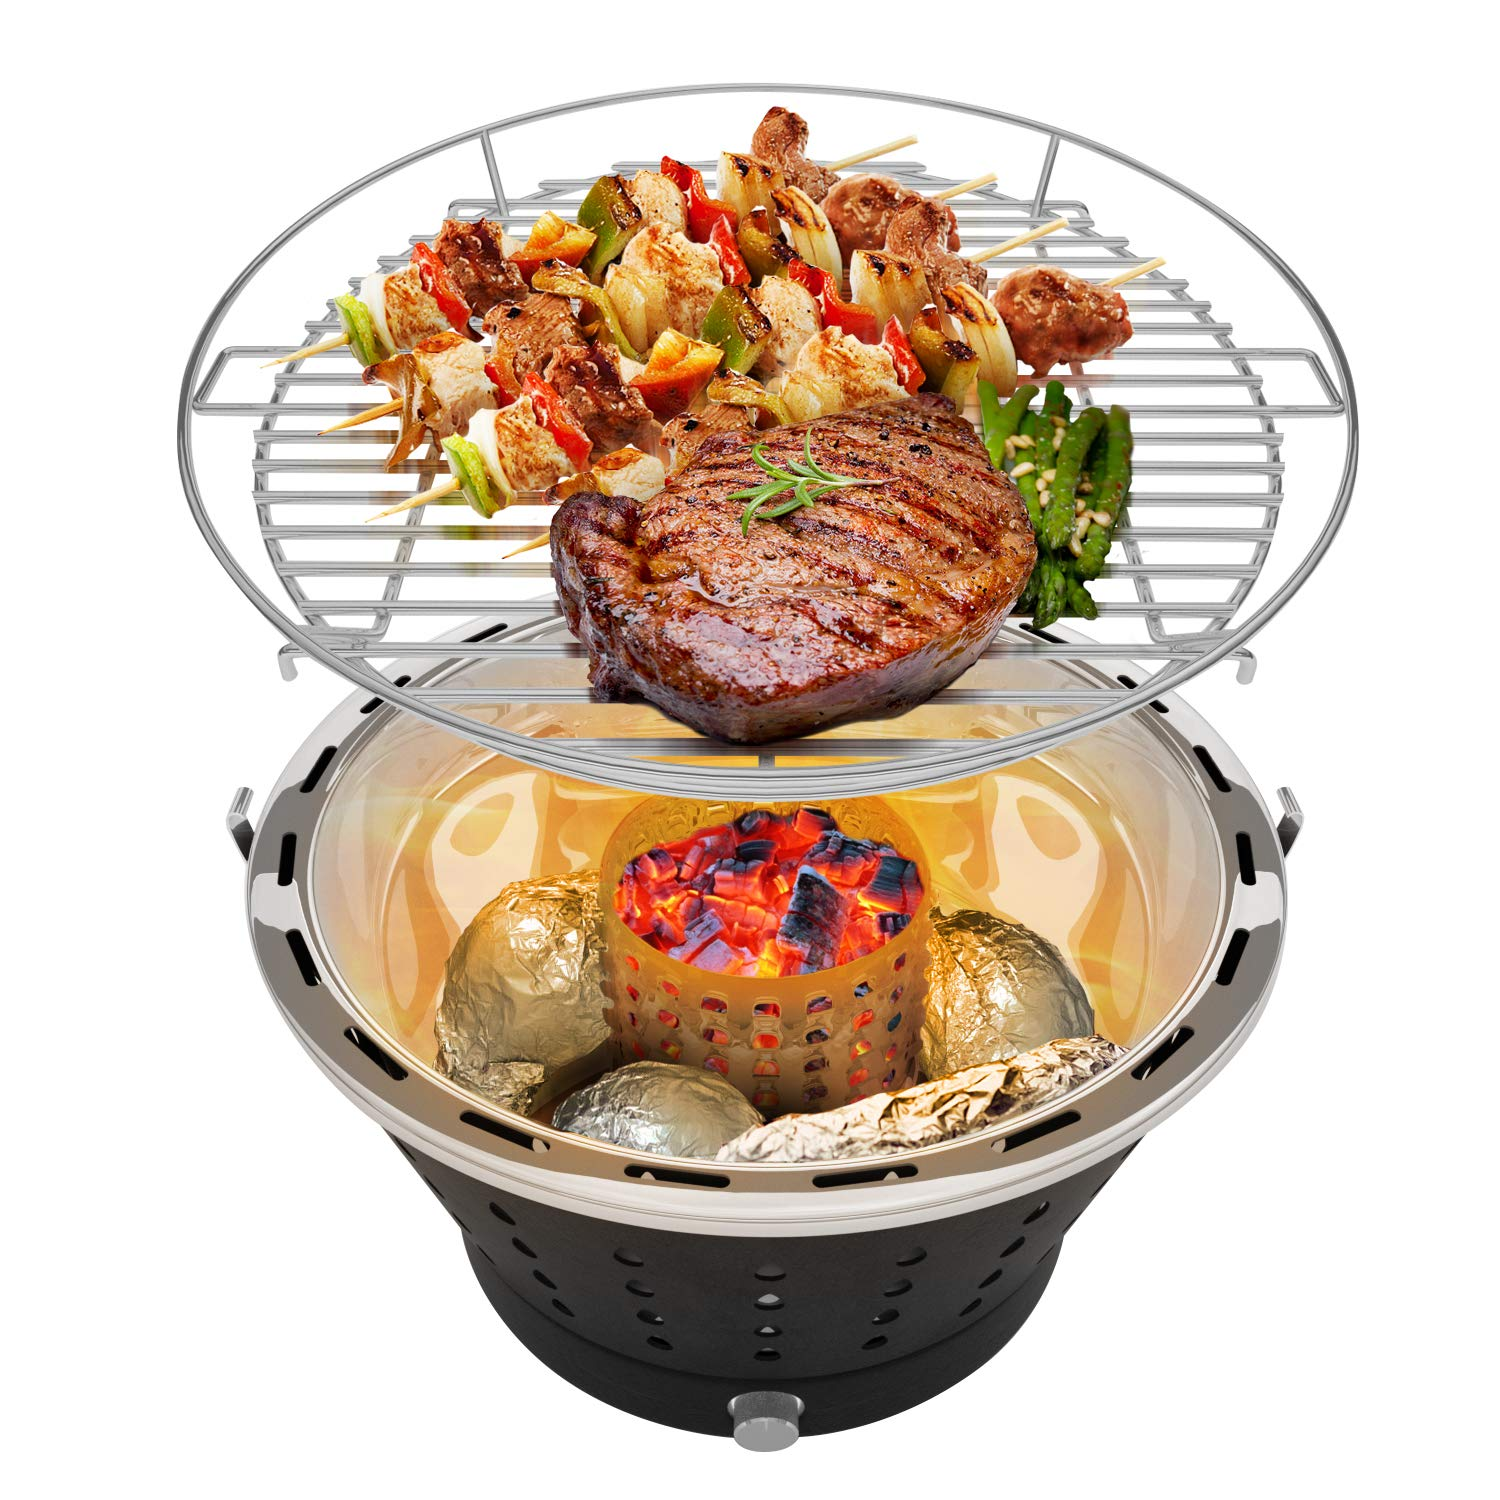 UNICOOK Portable Smokeless Charcoal Grill, Stainless Steel BBQ Grill with Carry Bag, Perfect for Camping, Picnic, Battery Powered Fan, Black